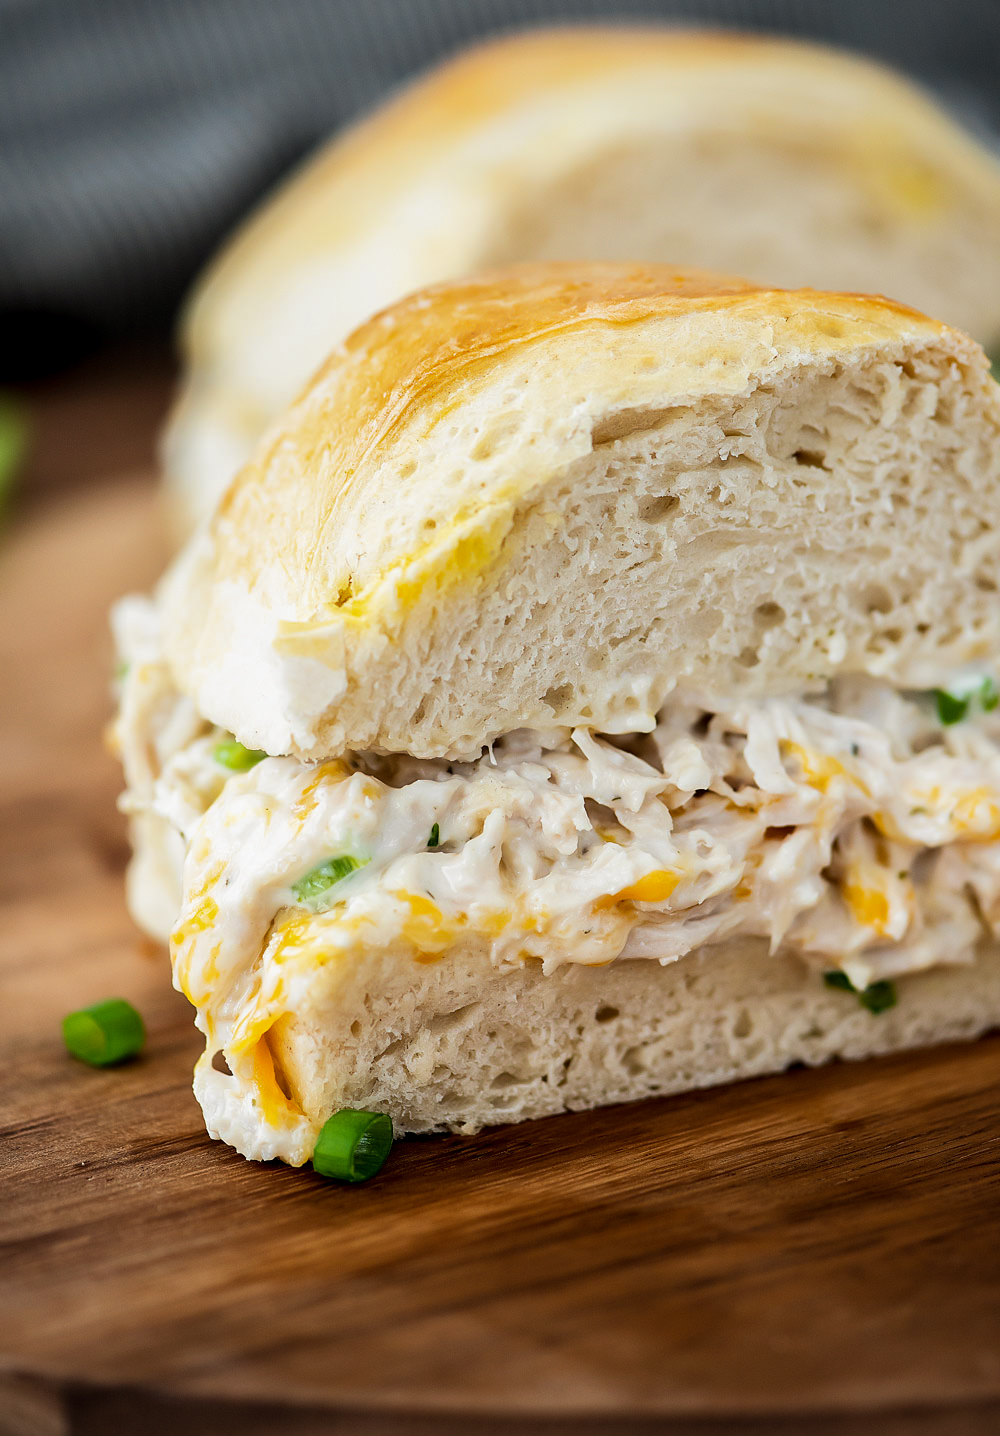 Chicken stuffed french bread is packed full of flavor with chicken, ranch dressing, loads of cheese and green onion. Life-in-the-Lofthouse.com